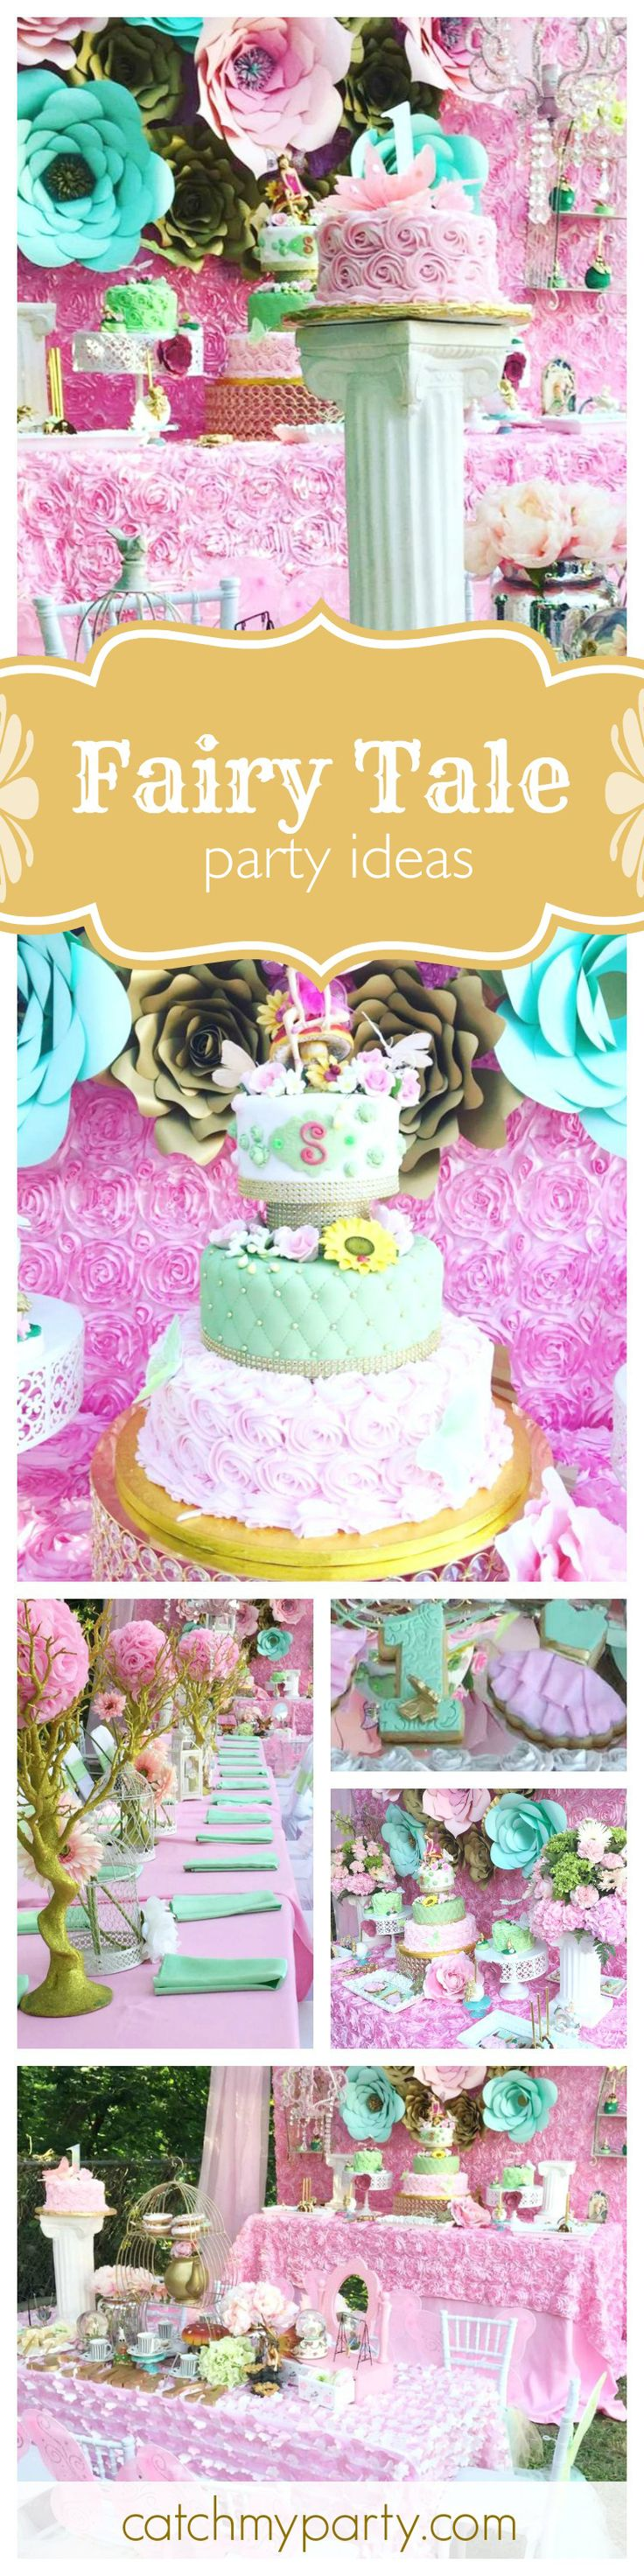 Thinking of throwing a Fairy Tale party? Then you won't want to miss this little girls pink 1st birthday party! The decorations are absolutely stunning! See more party ideas at CatchMyParty.com